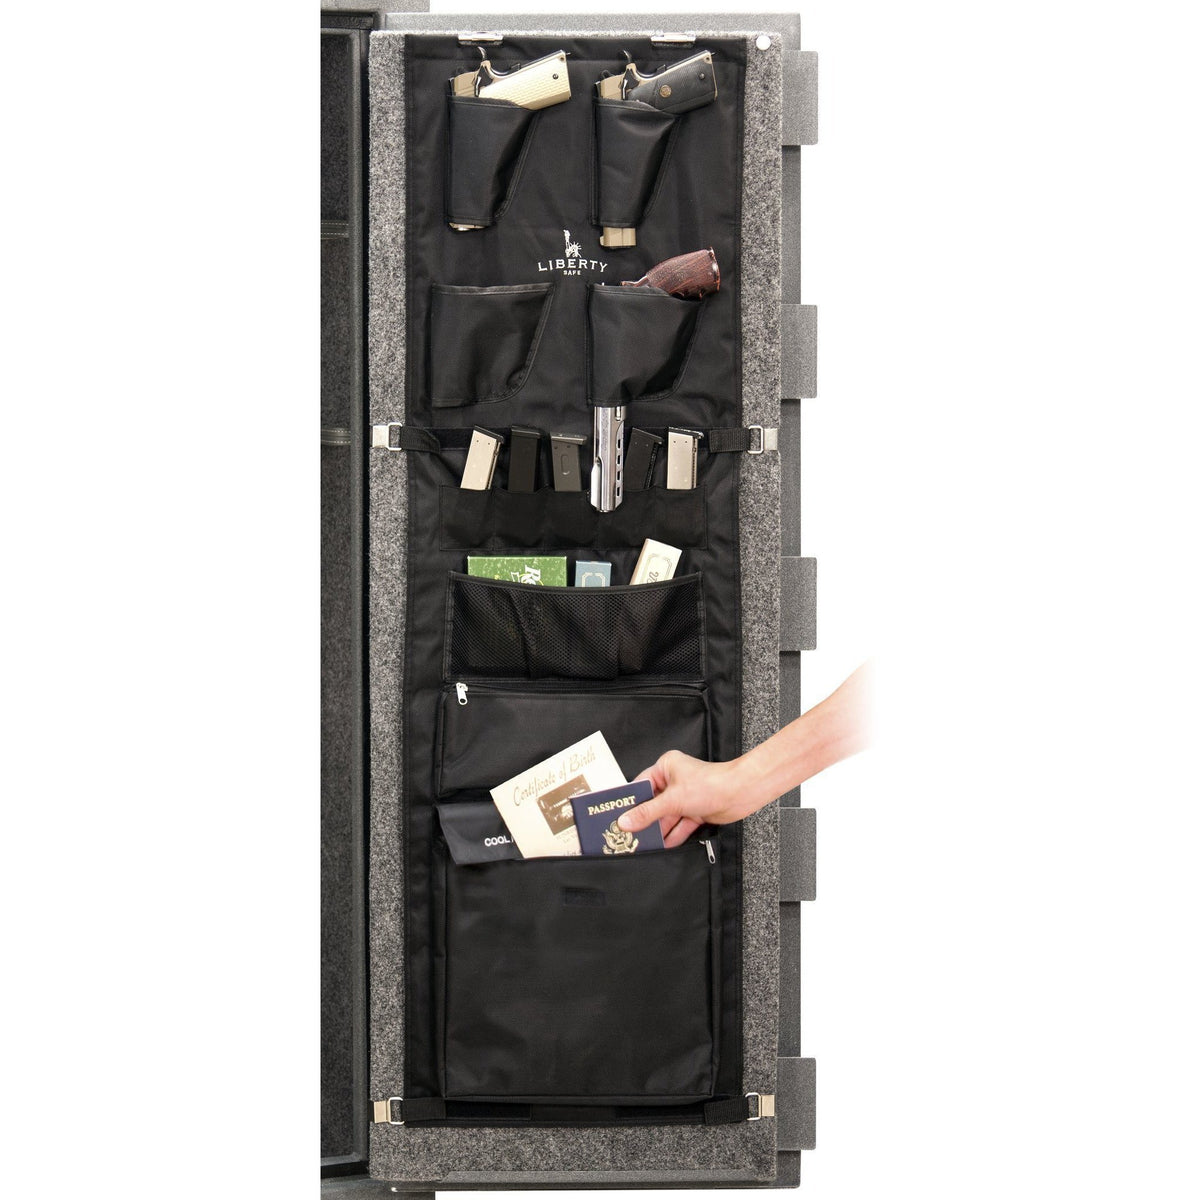 Accessory - Storage - Door Panel - 18 size safes